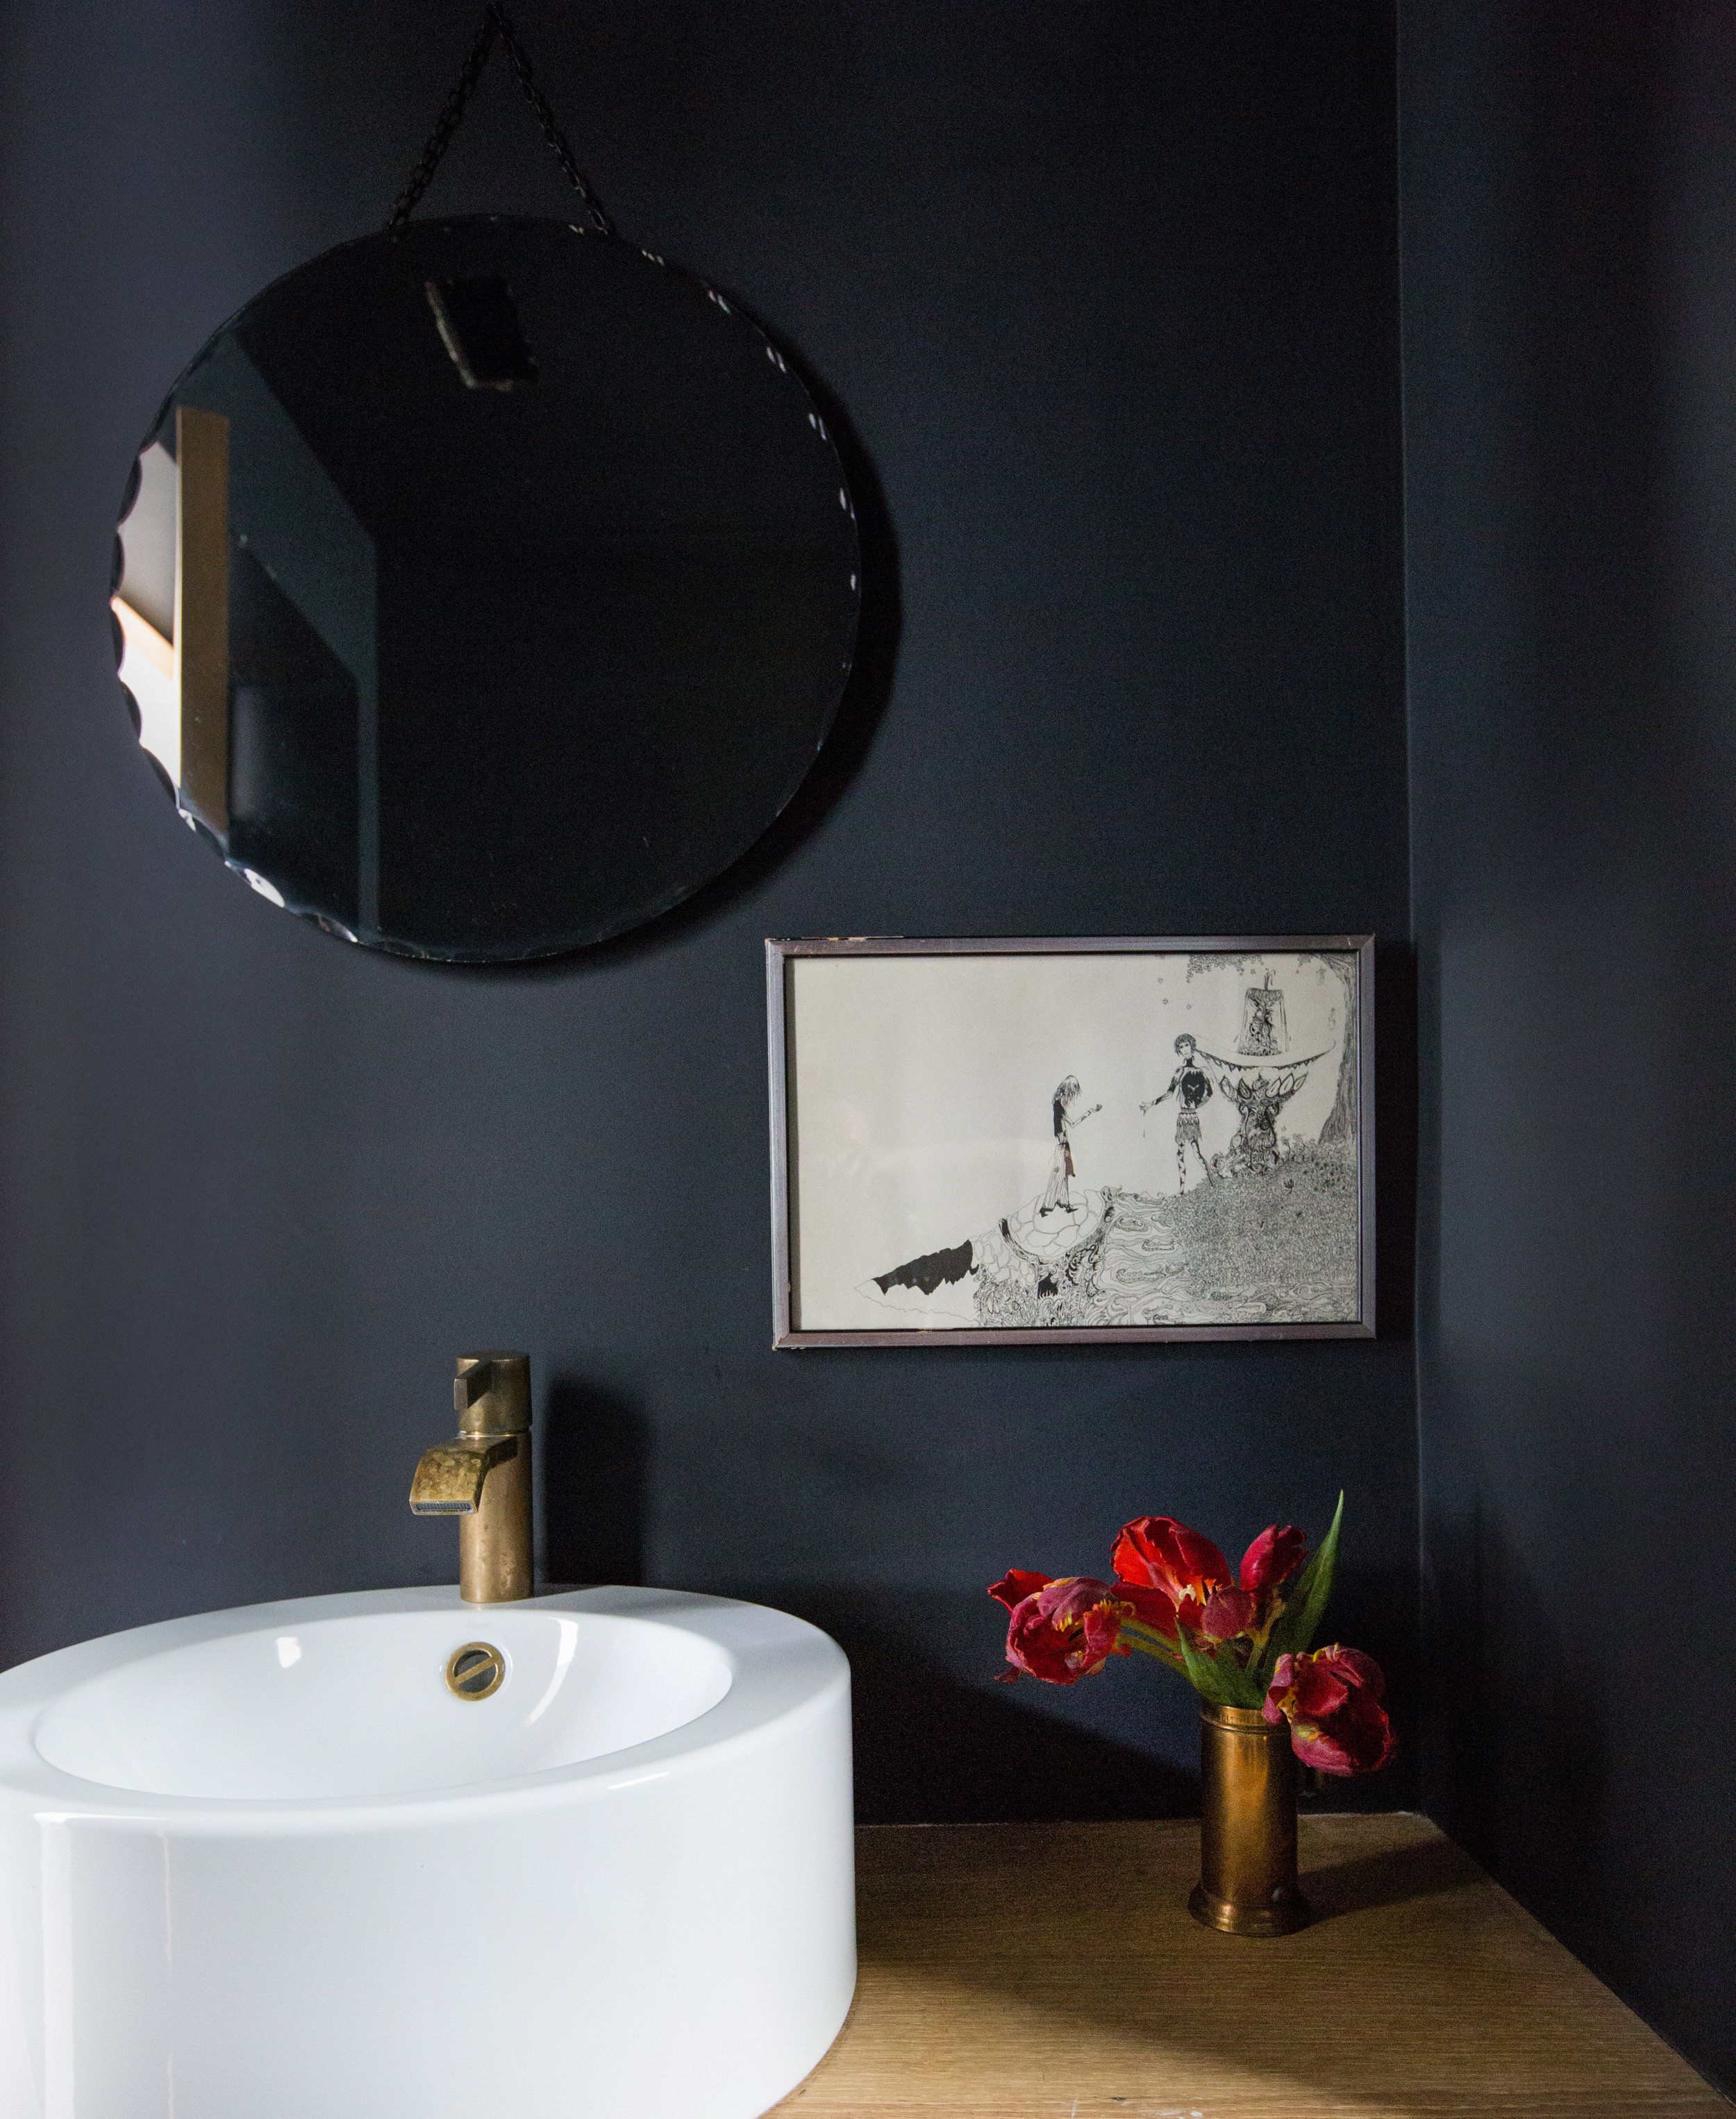 """PICK A BOLD AND MOODY DARK PAINT WITH PORTOLA - Written by Kat McEachernPortola Paints and Glazesis known for its rich pigmented colors. The company was founded by brothers Jamie and Casey Davis in 1998 when their father Jim Davis, a high-end contractor in Los Angeles, imported lime wash from Europe for a project he was building. """"He was struck by the power and beauty of the texture and colors, and from there we began working to create a line of unique specialty finishes."""" Over time they've become equally known for their acrylic paints and colors, so we wanted to learn more from Jamie and Casey about how dark, moody colors can set the mood for a room.""""Dark paint can do so many things, it evokes emotion and can bring romance and a sense of mystery to a room. Color has a wonderful ability to transport you through multiple sensations and feelings."""" The guys do have some words of advice for those considering a dark color.full story"""